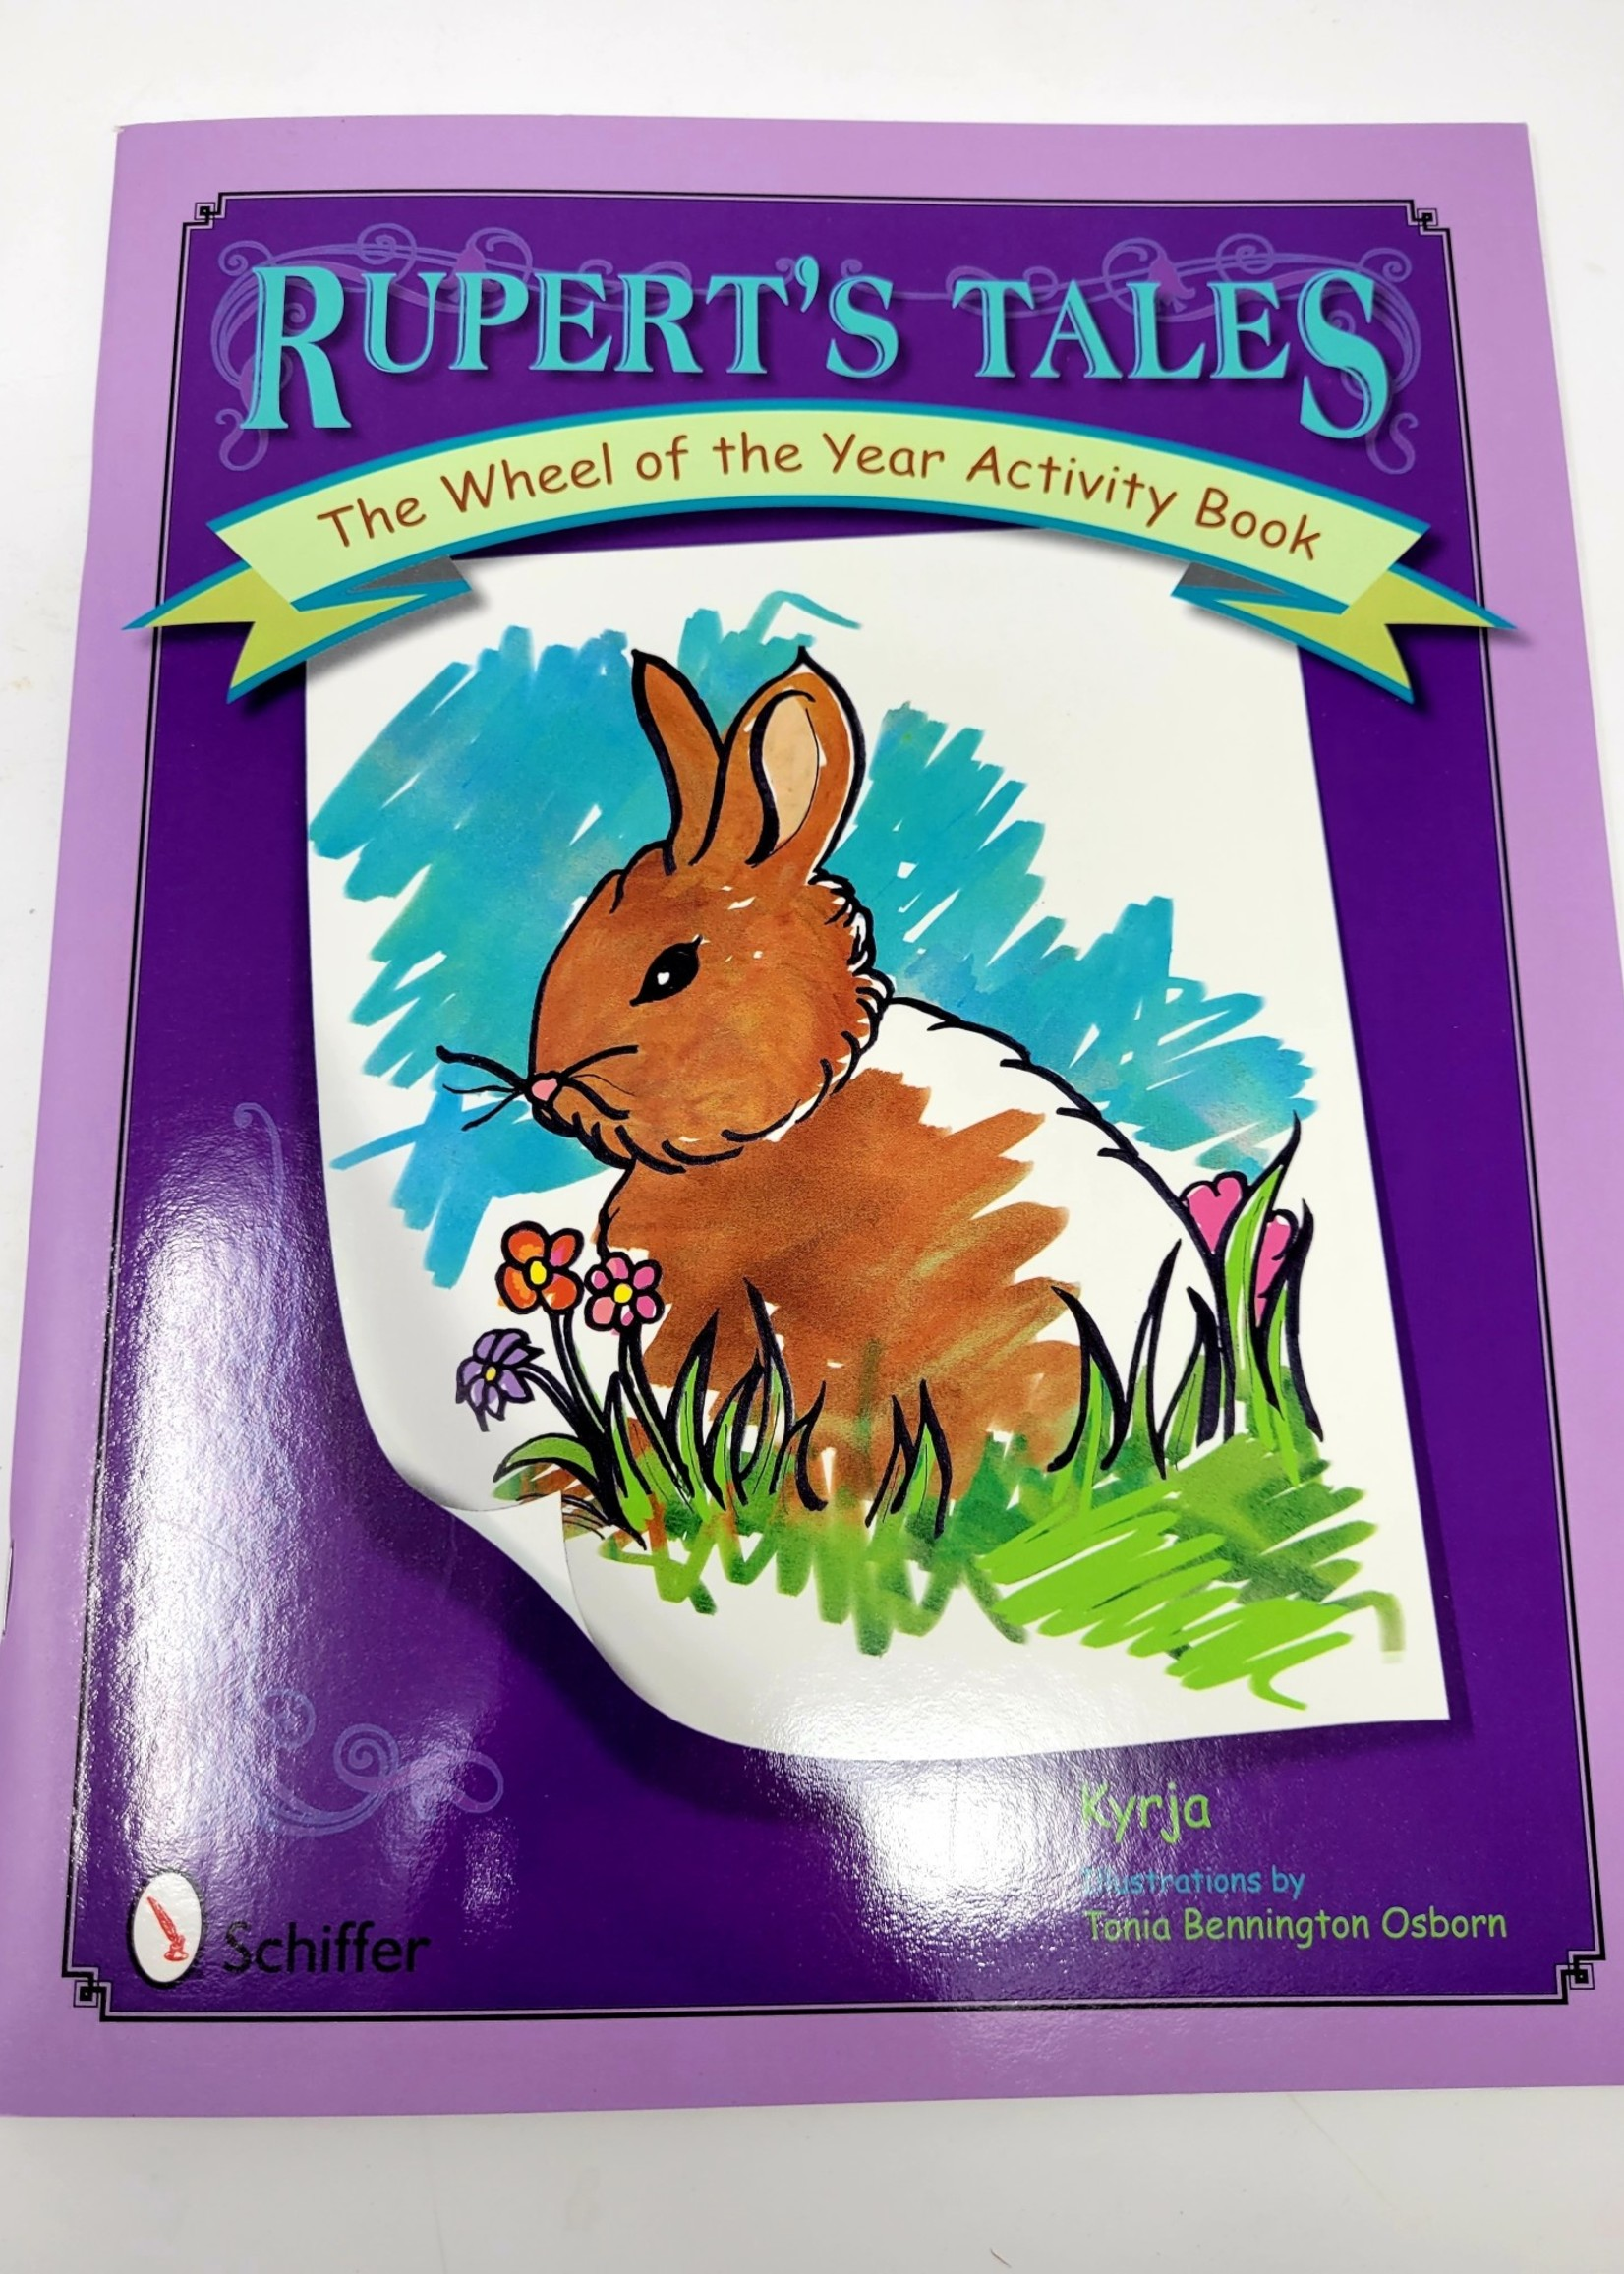 Ruperts Tales The Wheel of the Year Activity Book